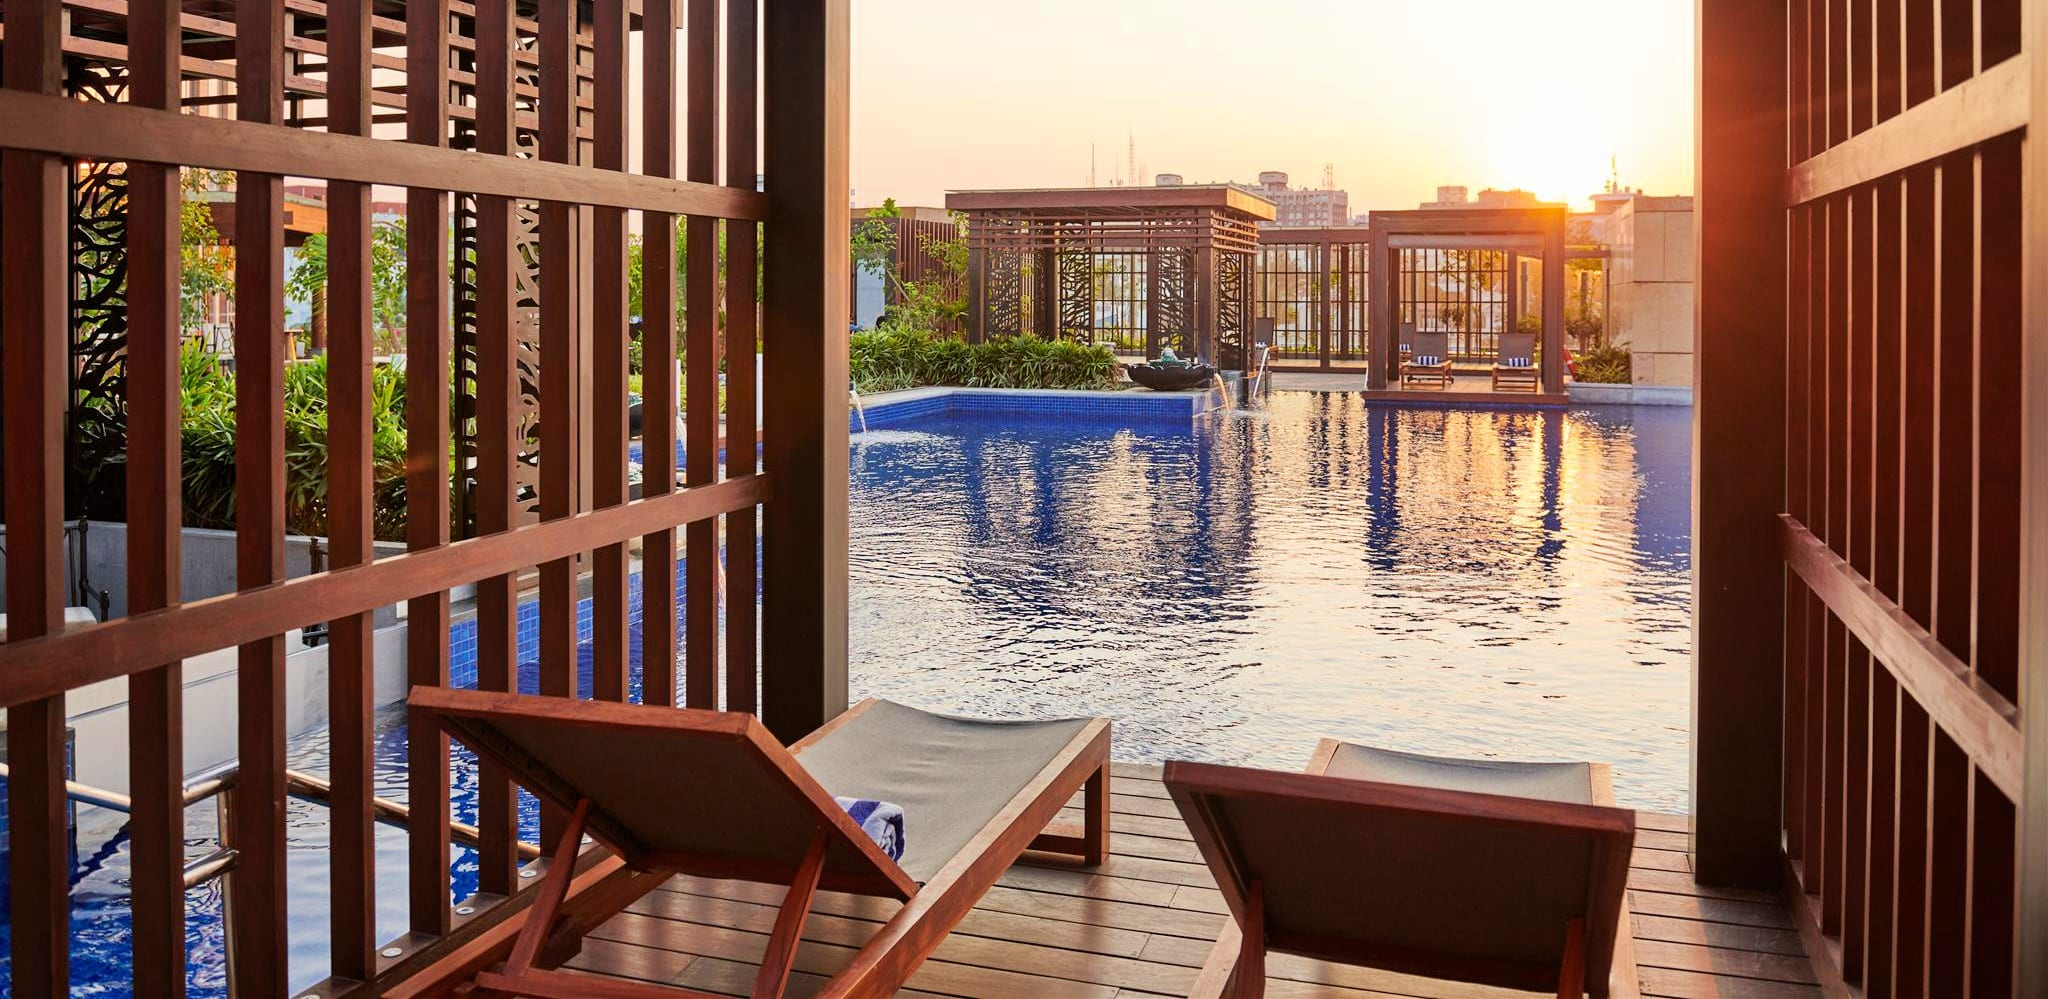 Poolside Cabana at Conrad Bengaluru